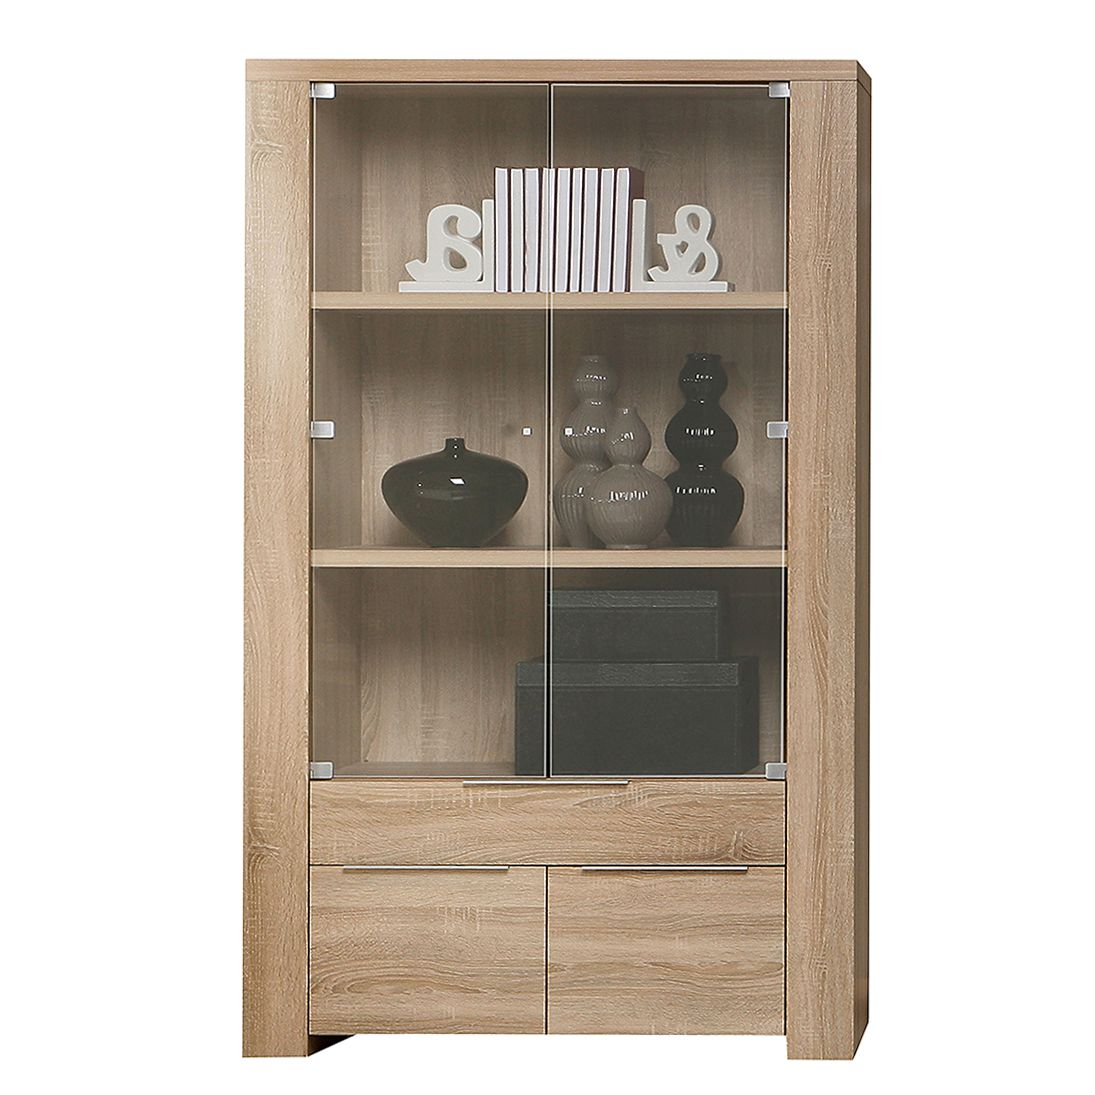 Glasvitrine Discount Vitrine Sonoma Eiche Wei Great Highboard Vitrine Cm Walnuss